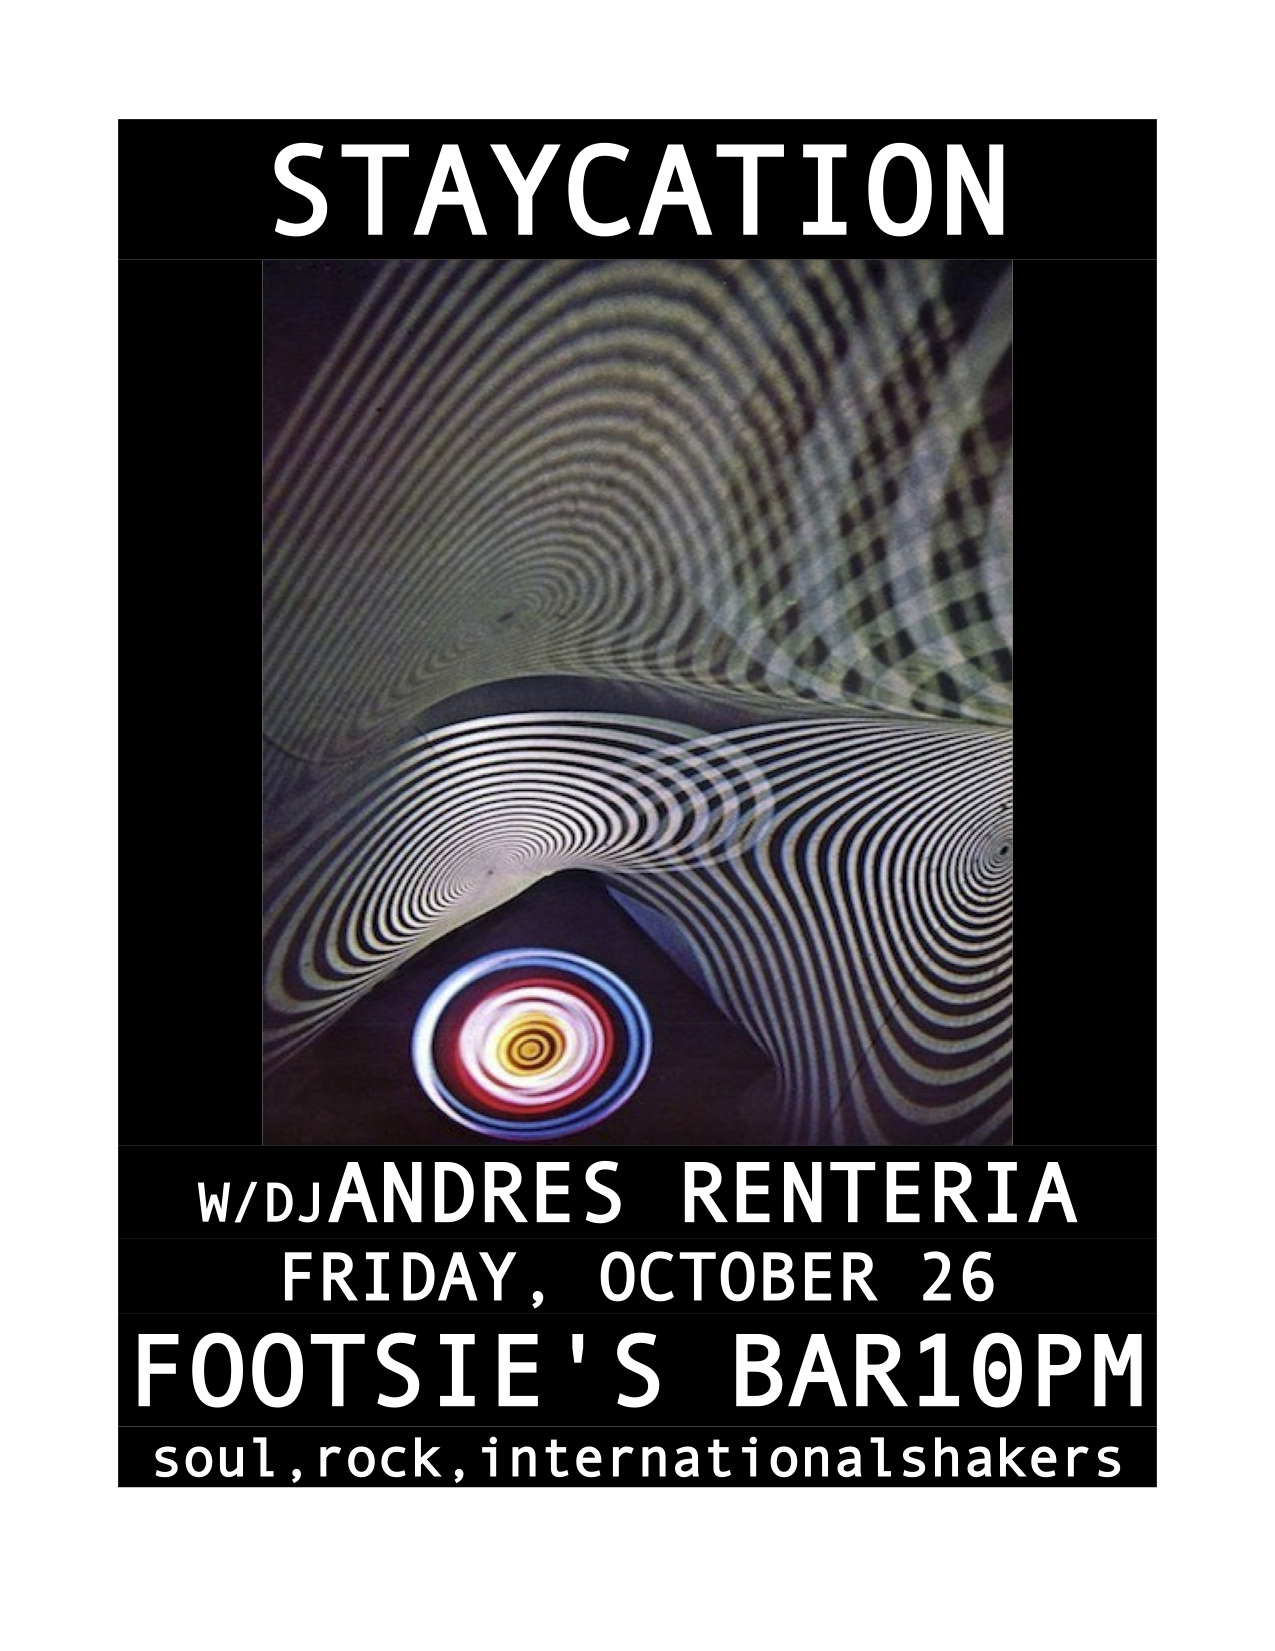 I'll be spinning records like I do every Friday at Footsie's Bar in L.A. for my STAYCATION night!  SOUL, ROCK, INTERNATIONAL SHAKERS, FUNKY 45S 10pm-2am at the best bar in town!!!!!!